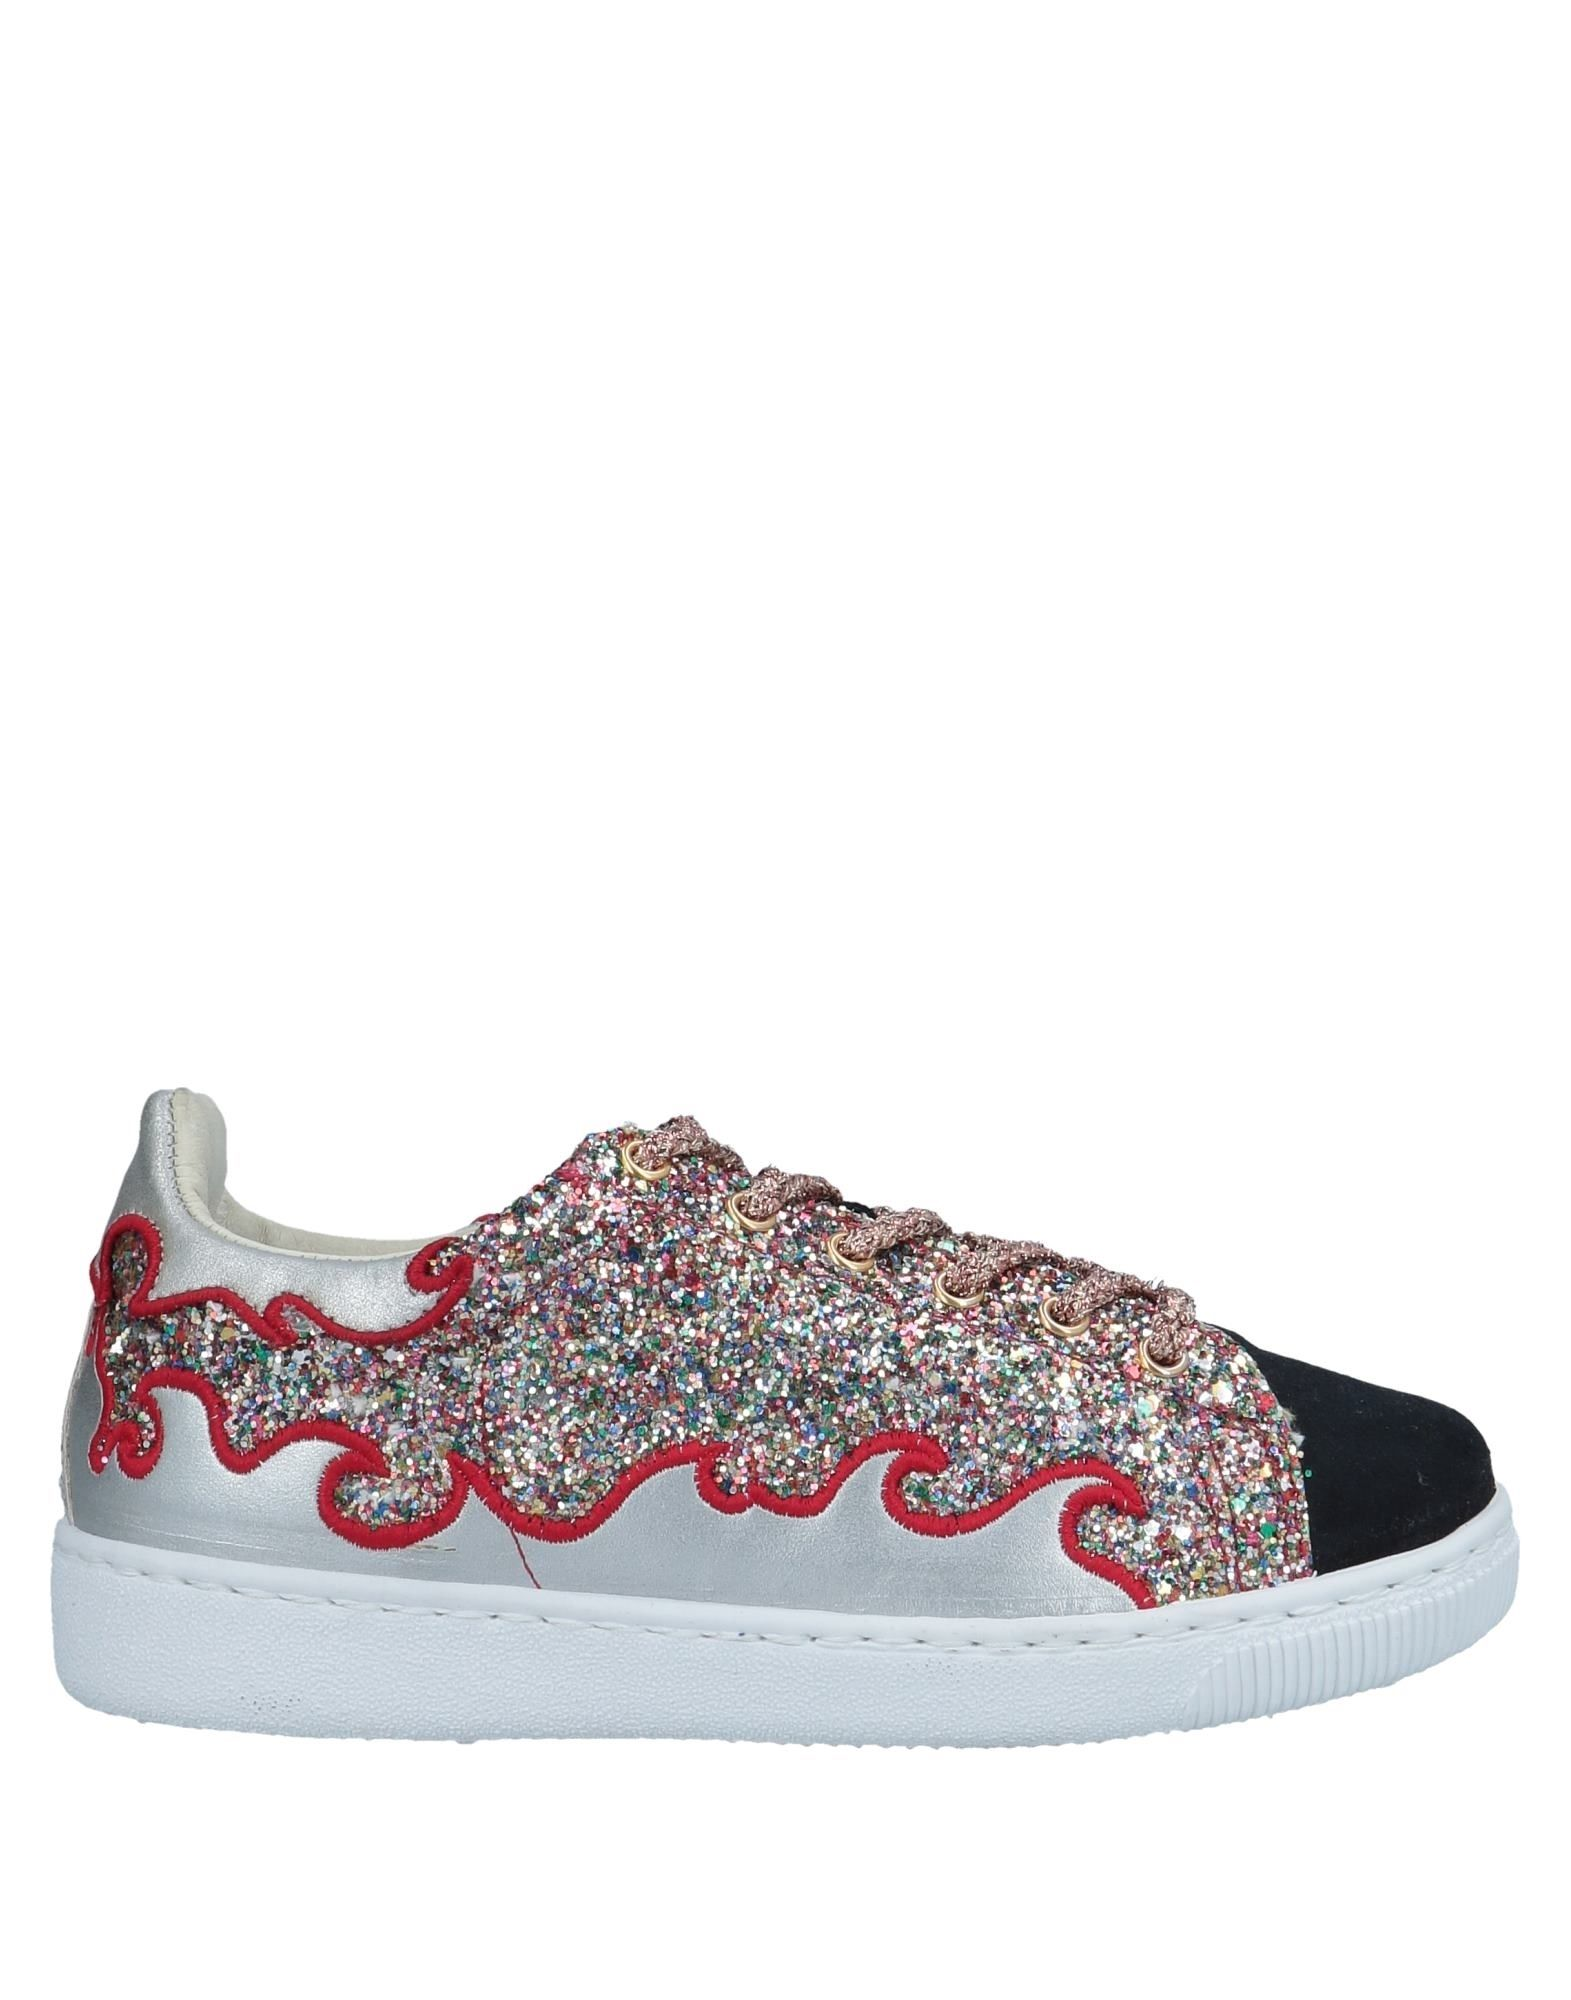 2Star Sneakers - on Women 2Star Sneakers online on -  Australia - 11549923CJ de1c1a